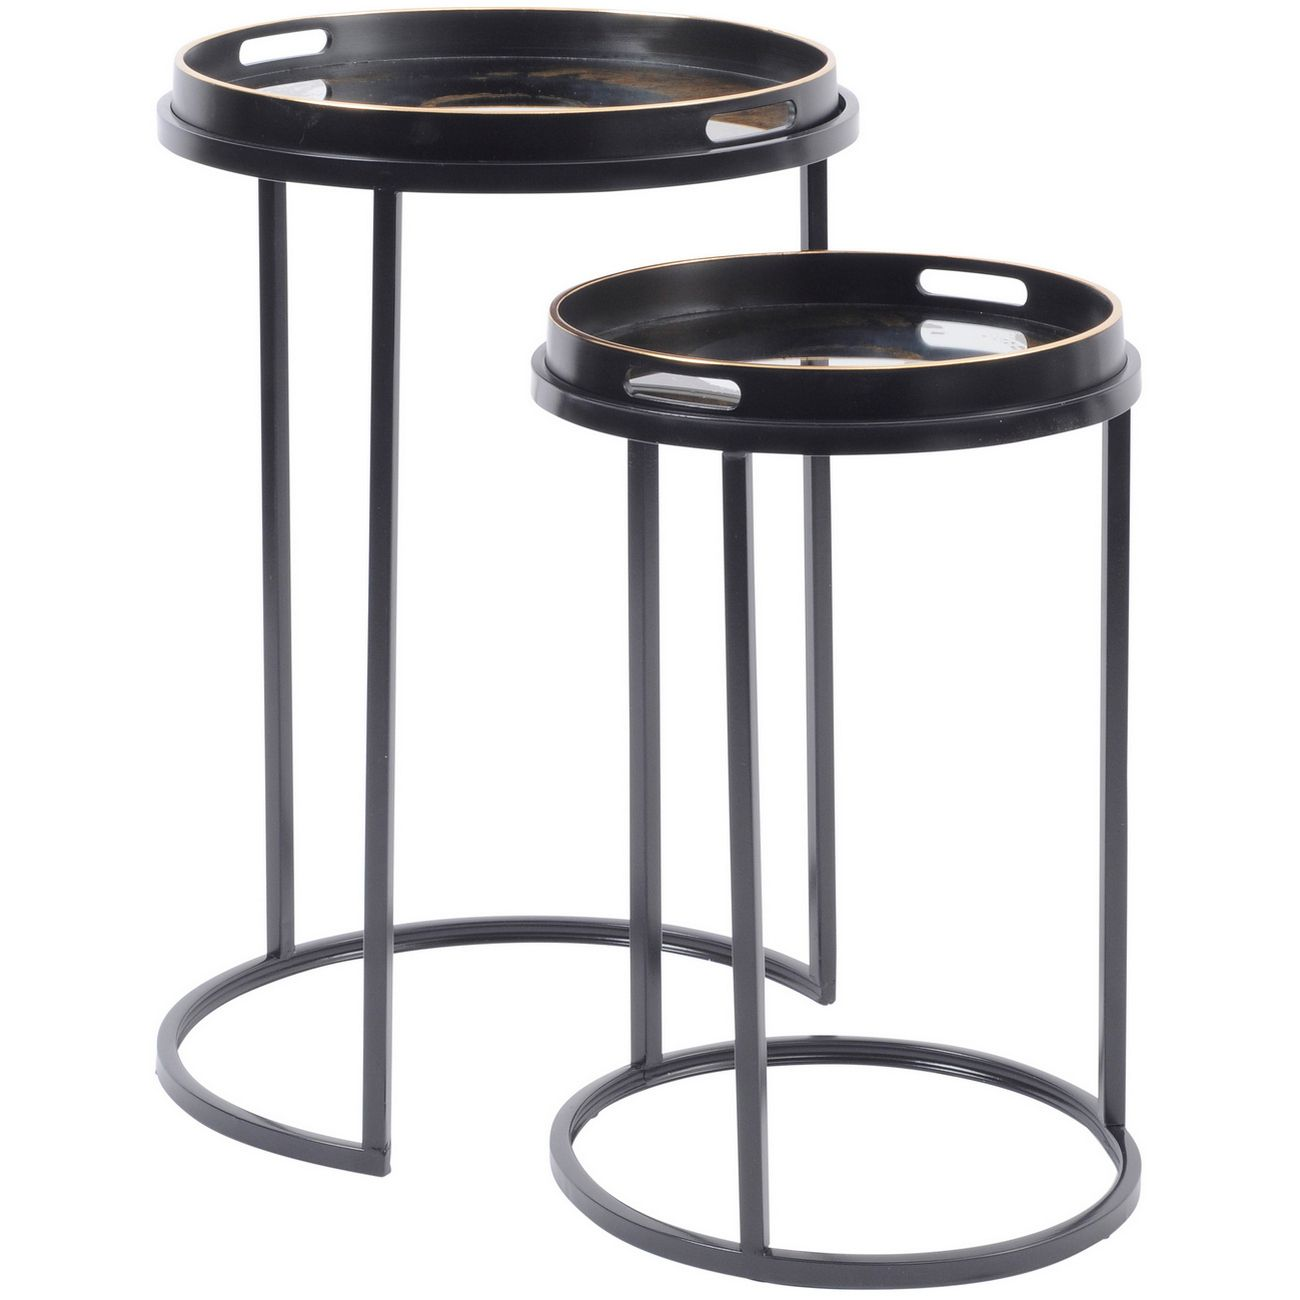 Mirrored Black and Gold Swirl Table Set